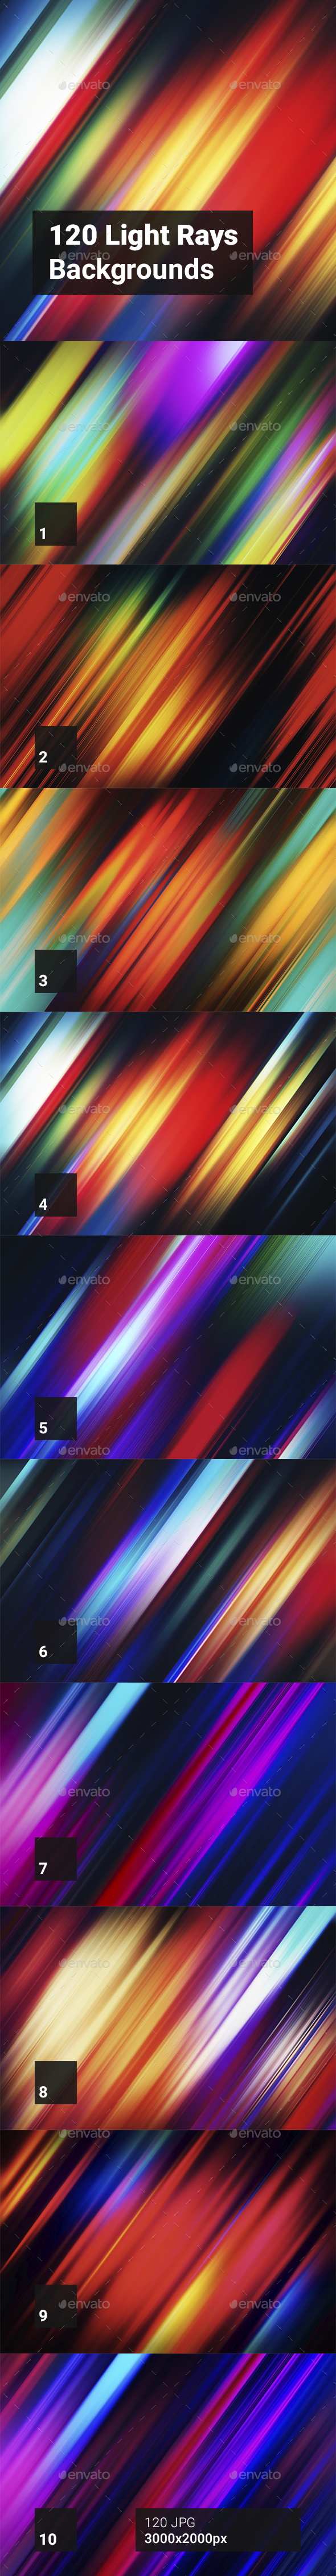 GraphicRiver 120 Light Rays Backgrounds 20367760